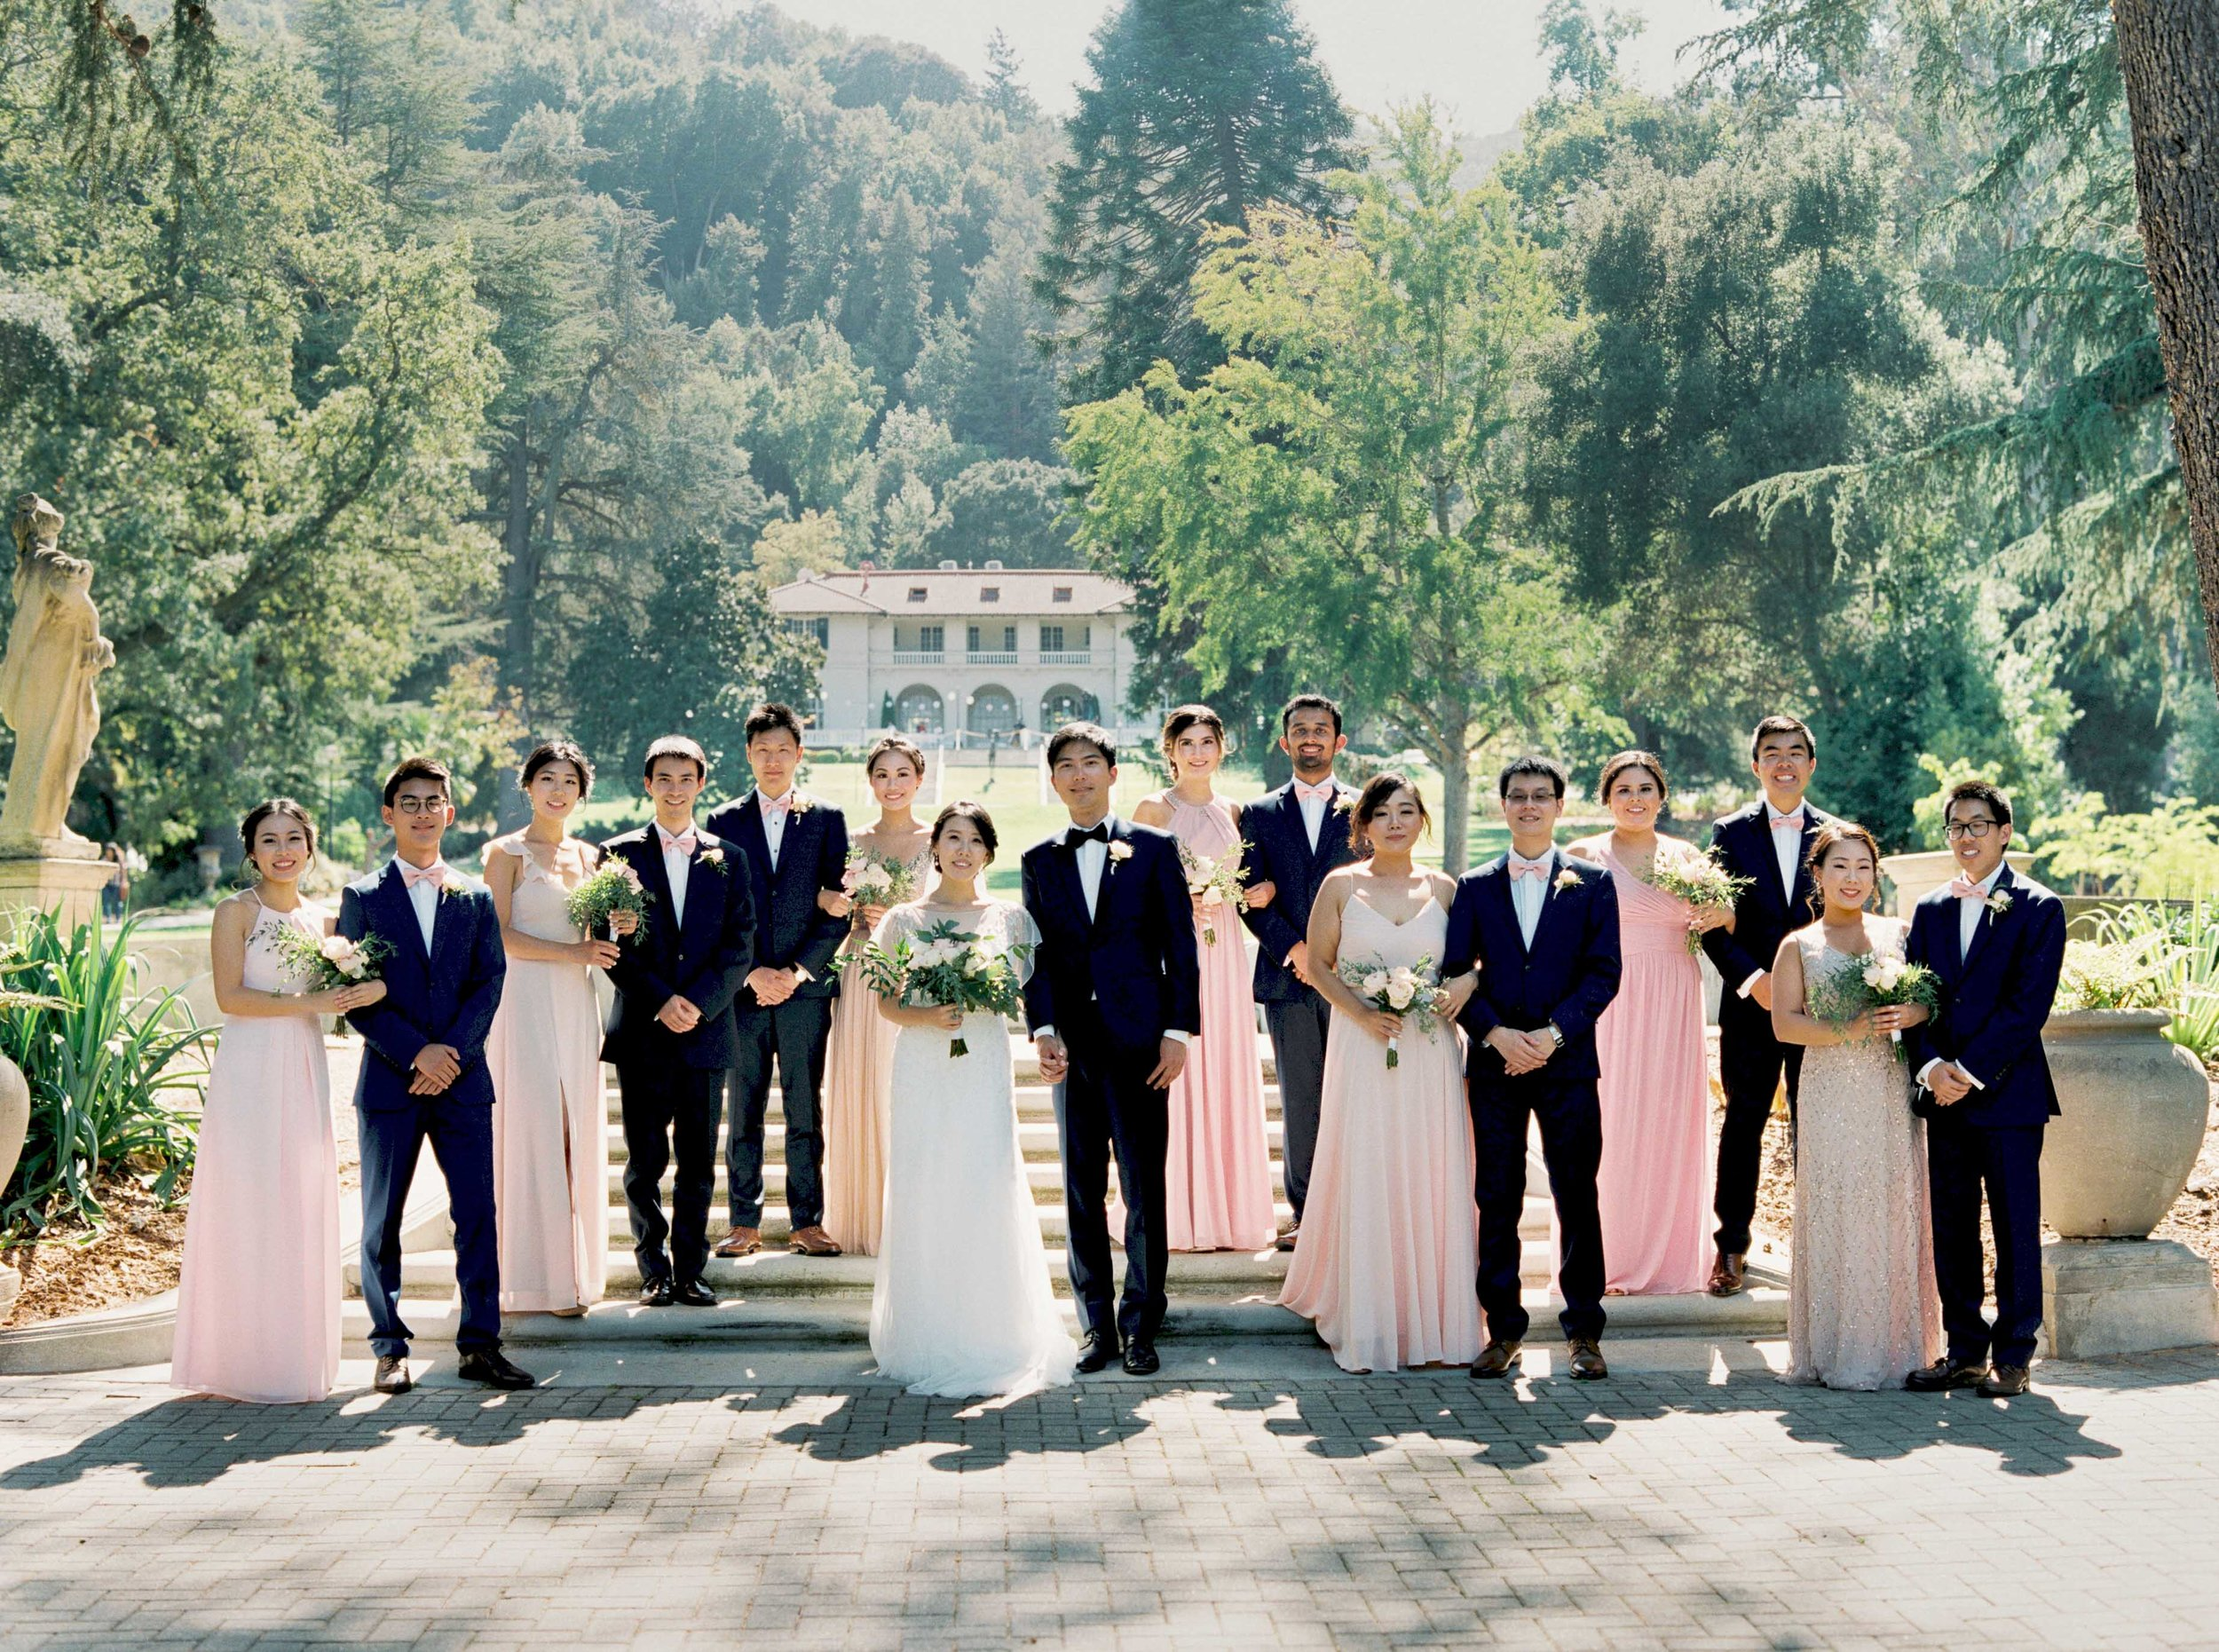 Villa_Montalvo_Wedding_Photographer_Videographer_San_Francisco067.jpg